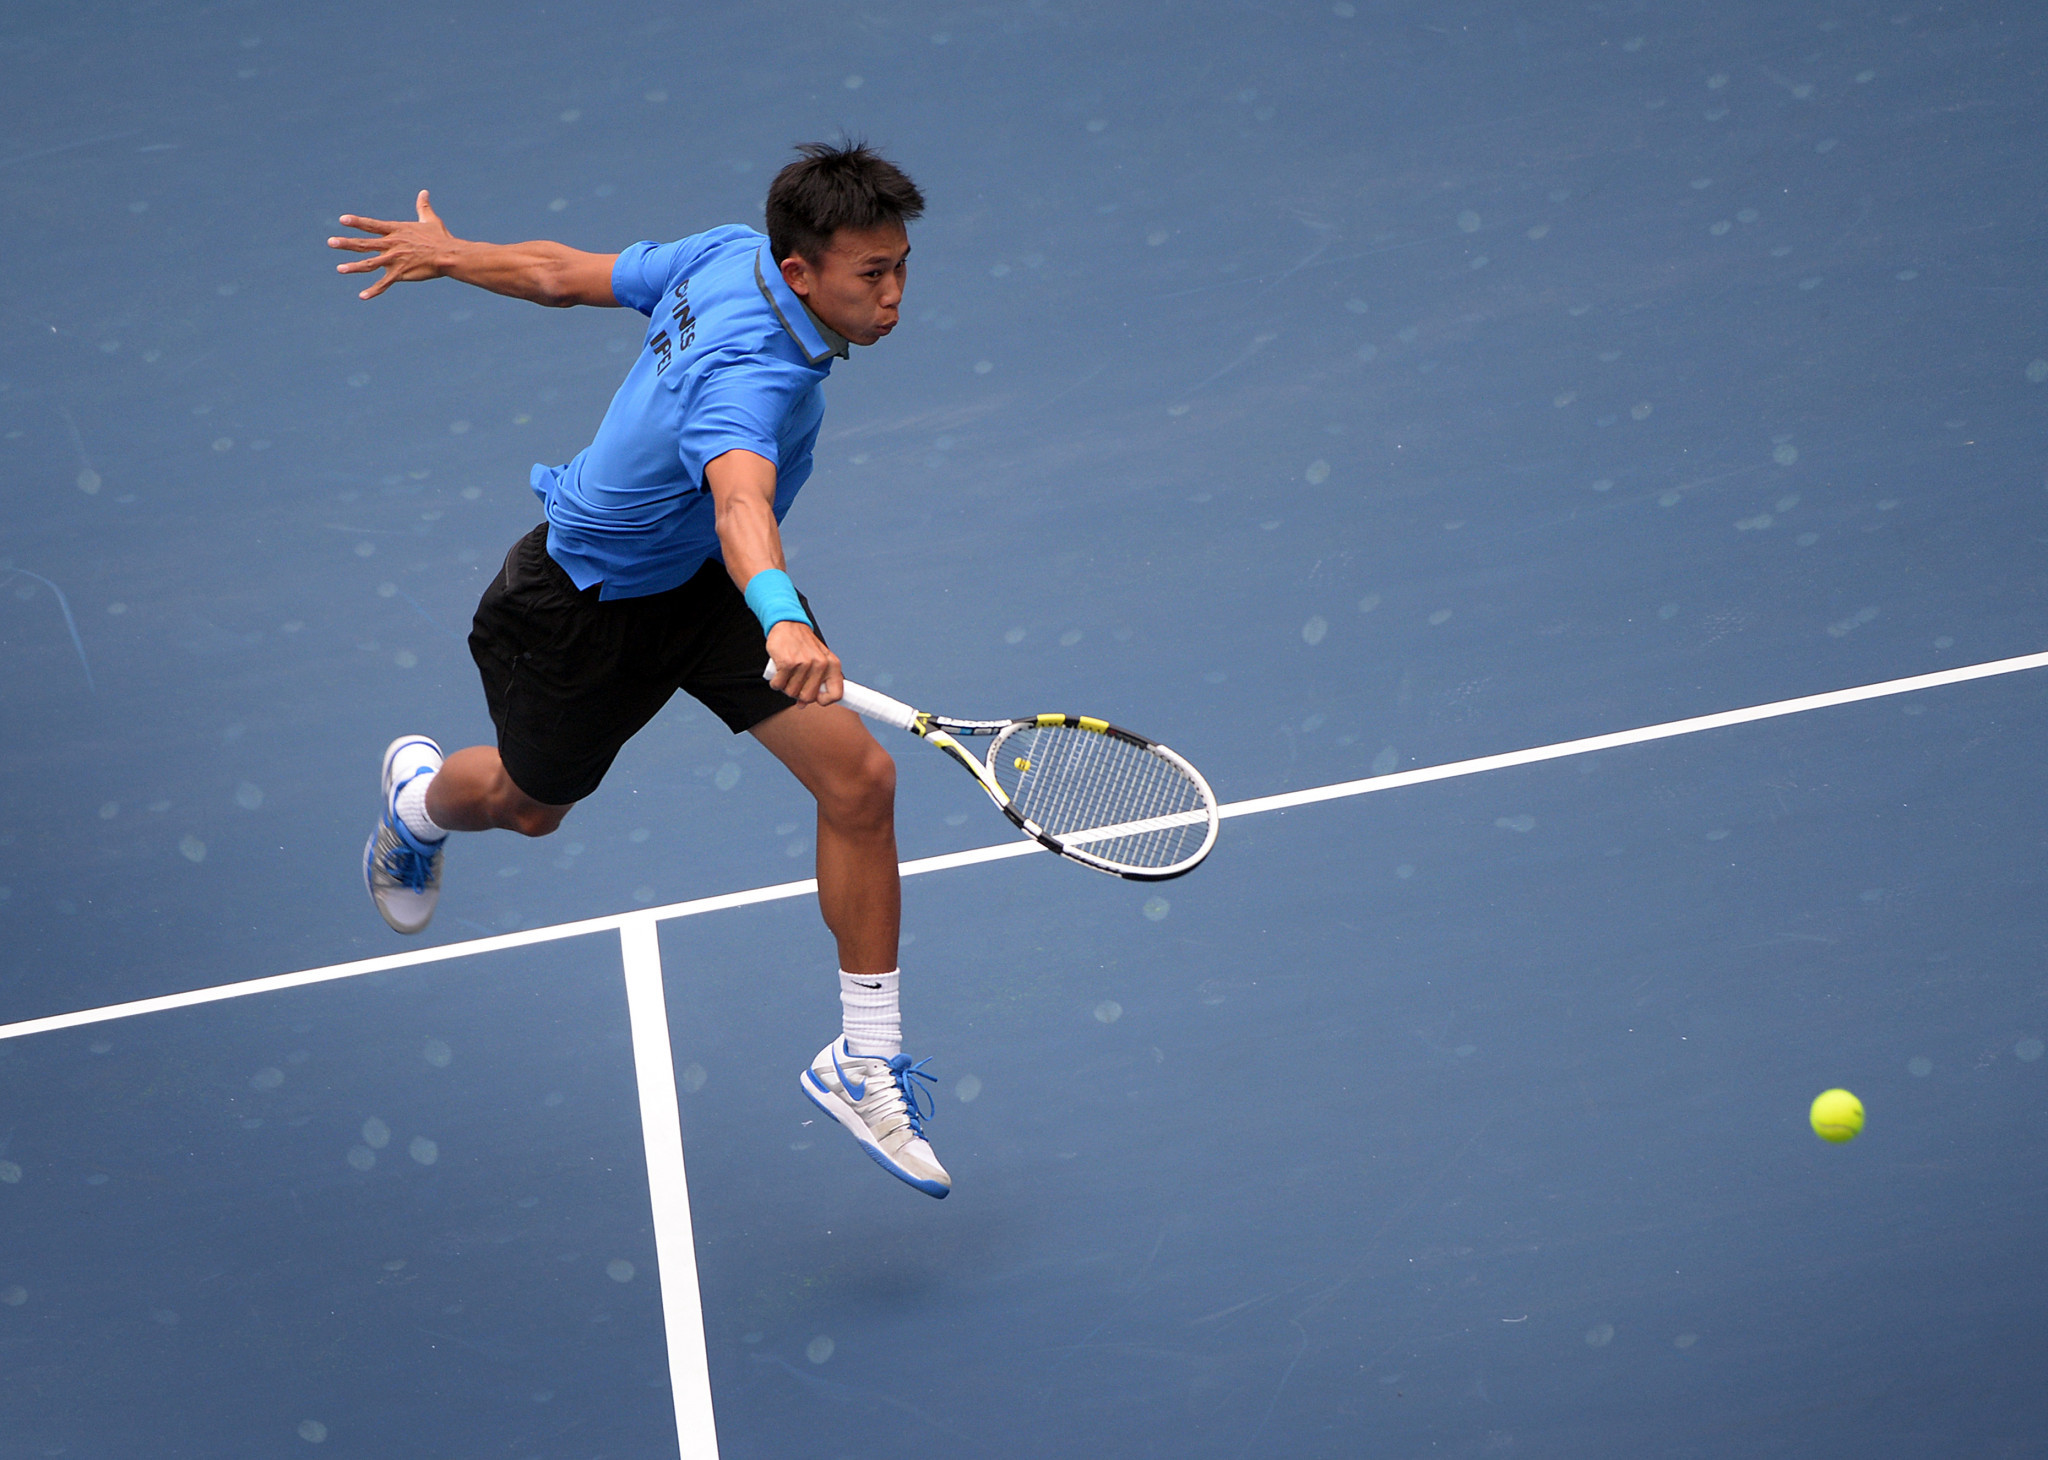 Ti Chen is one of the players on the men's ITF tennis panel ©Getty Images